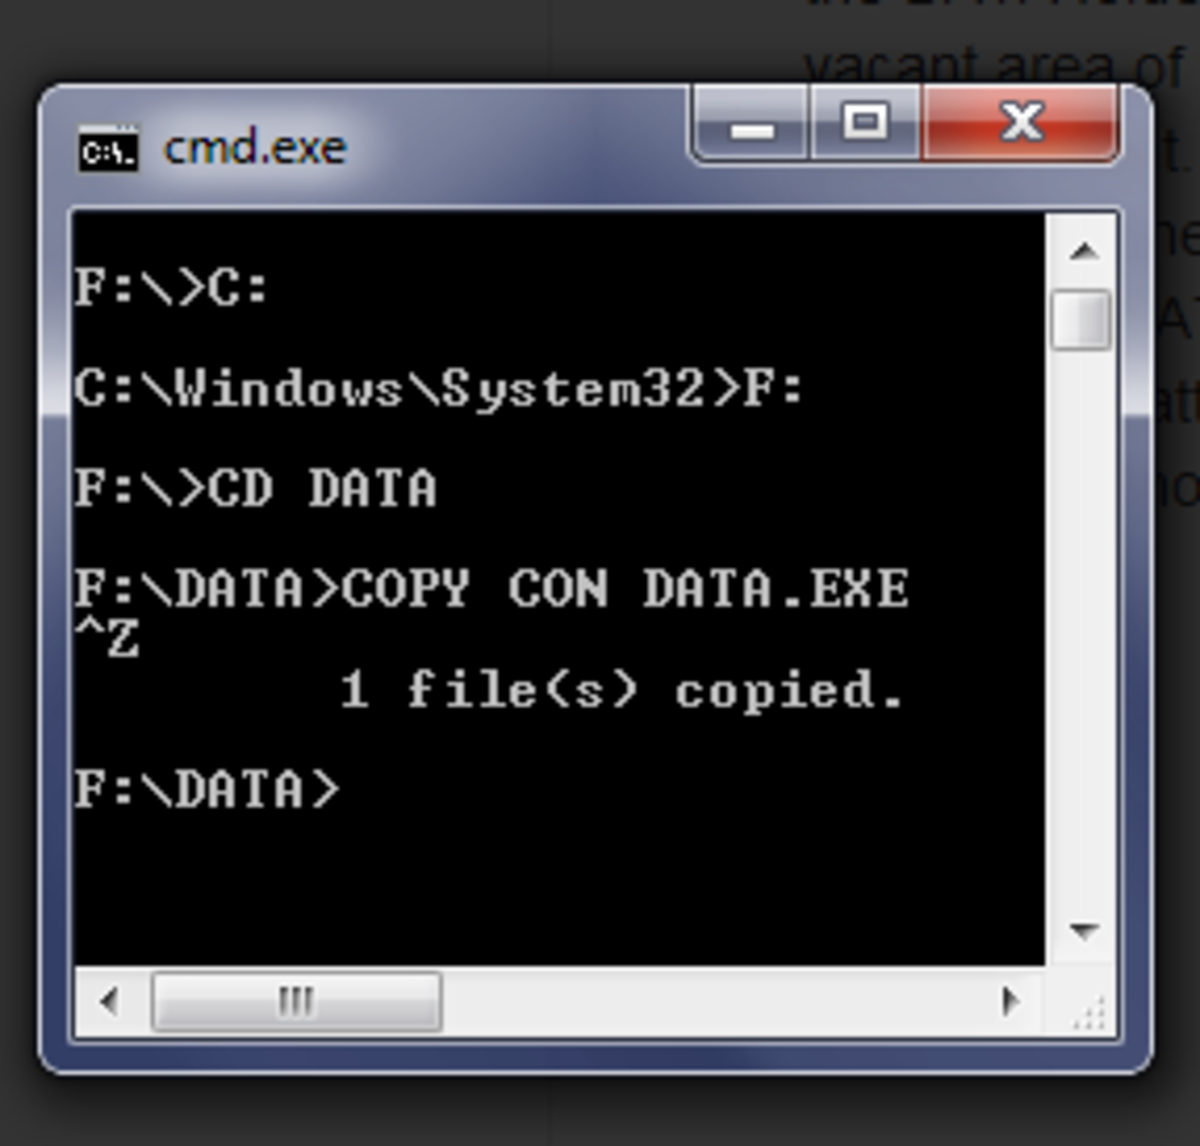 By creating a DATA.EXE file in the command prompt will  protect your DATA folder from virus attack.